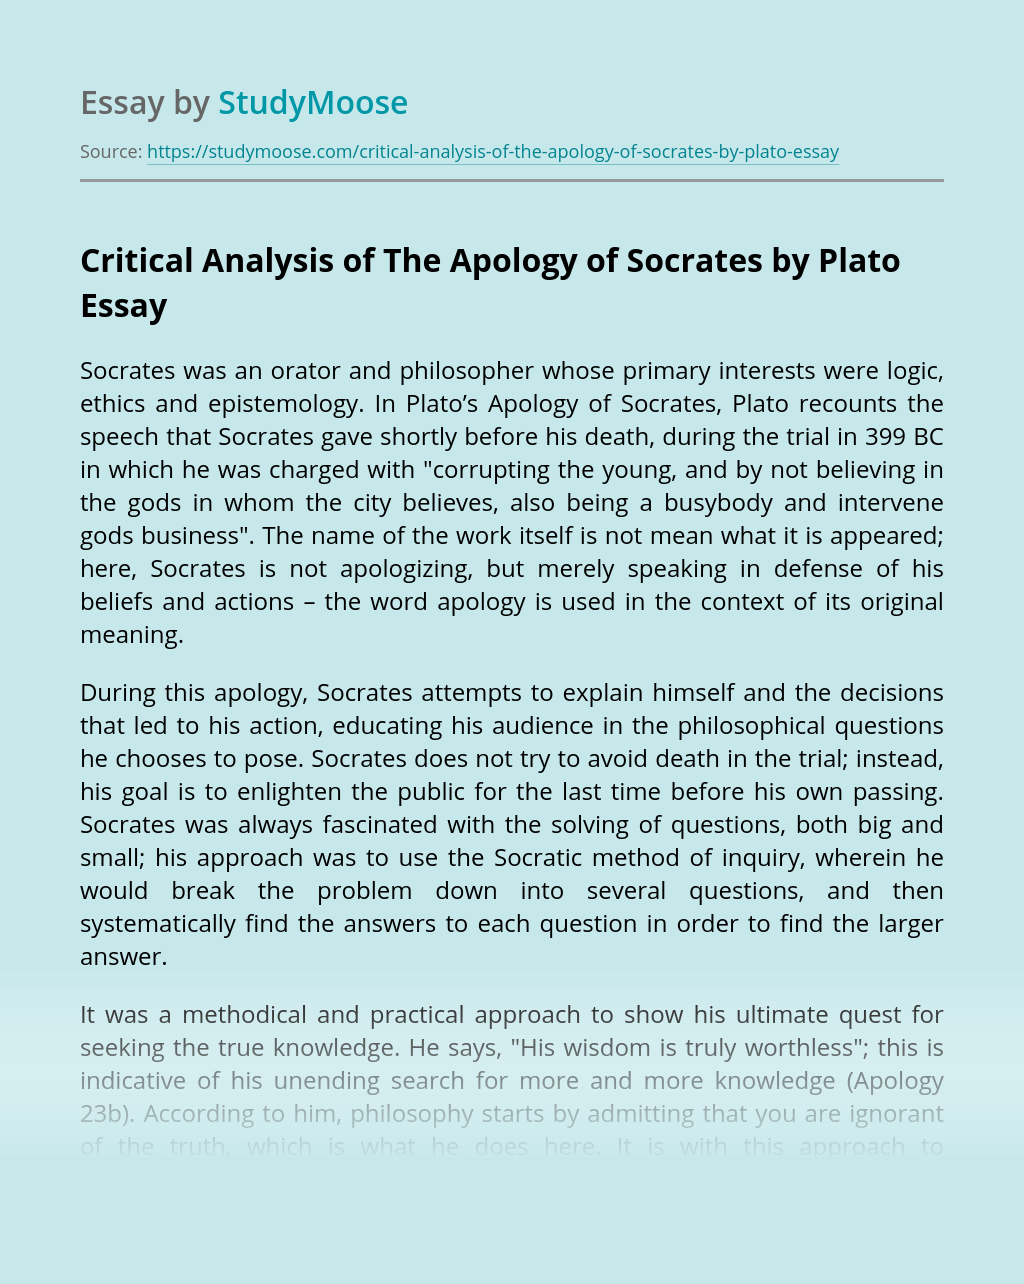 Critical Analysis of The Apology of Socrates by Plato